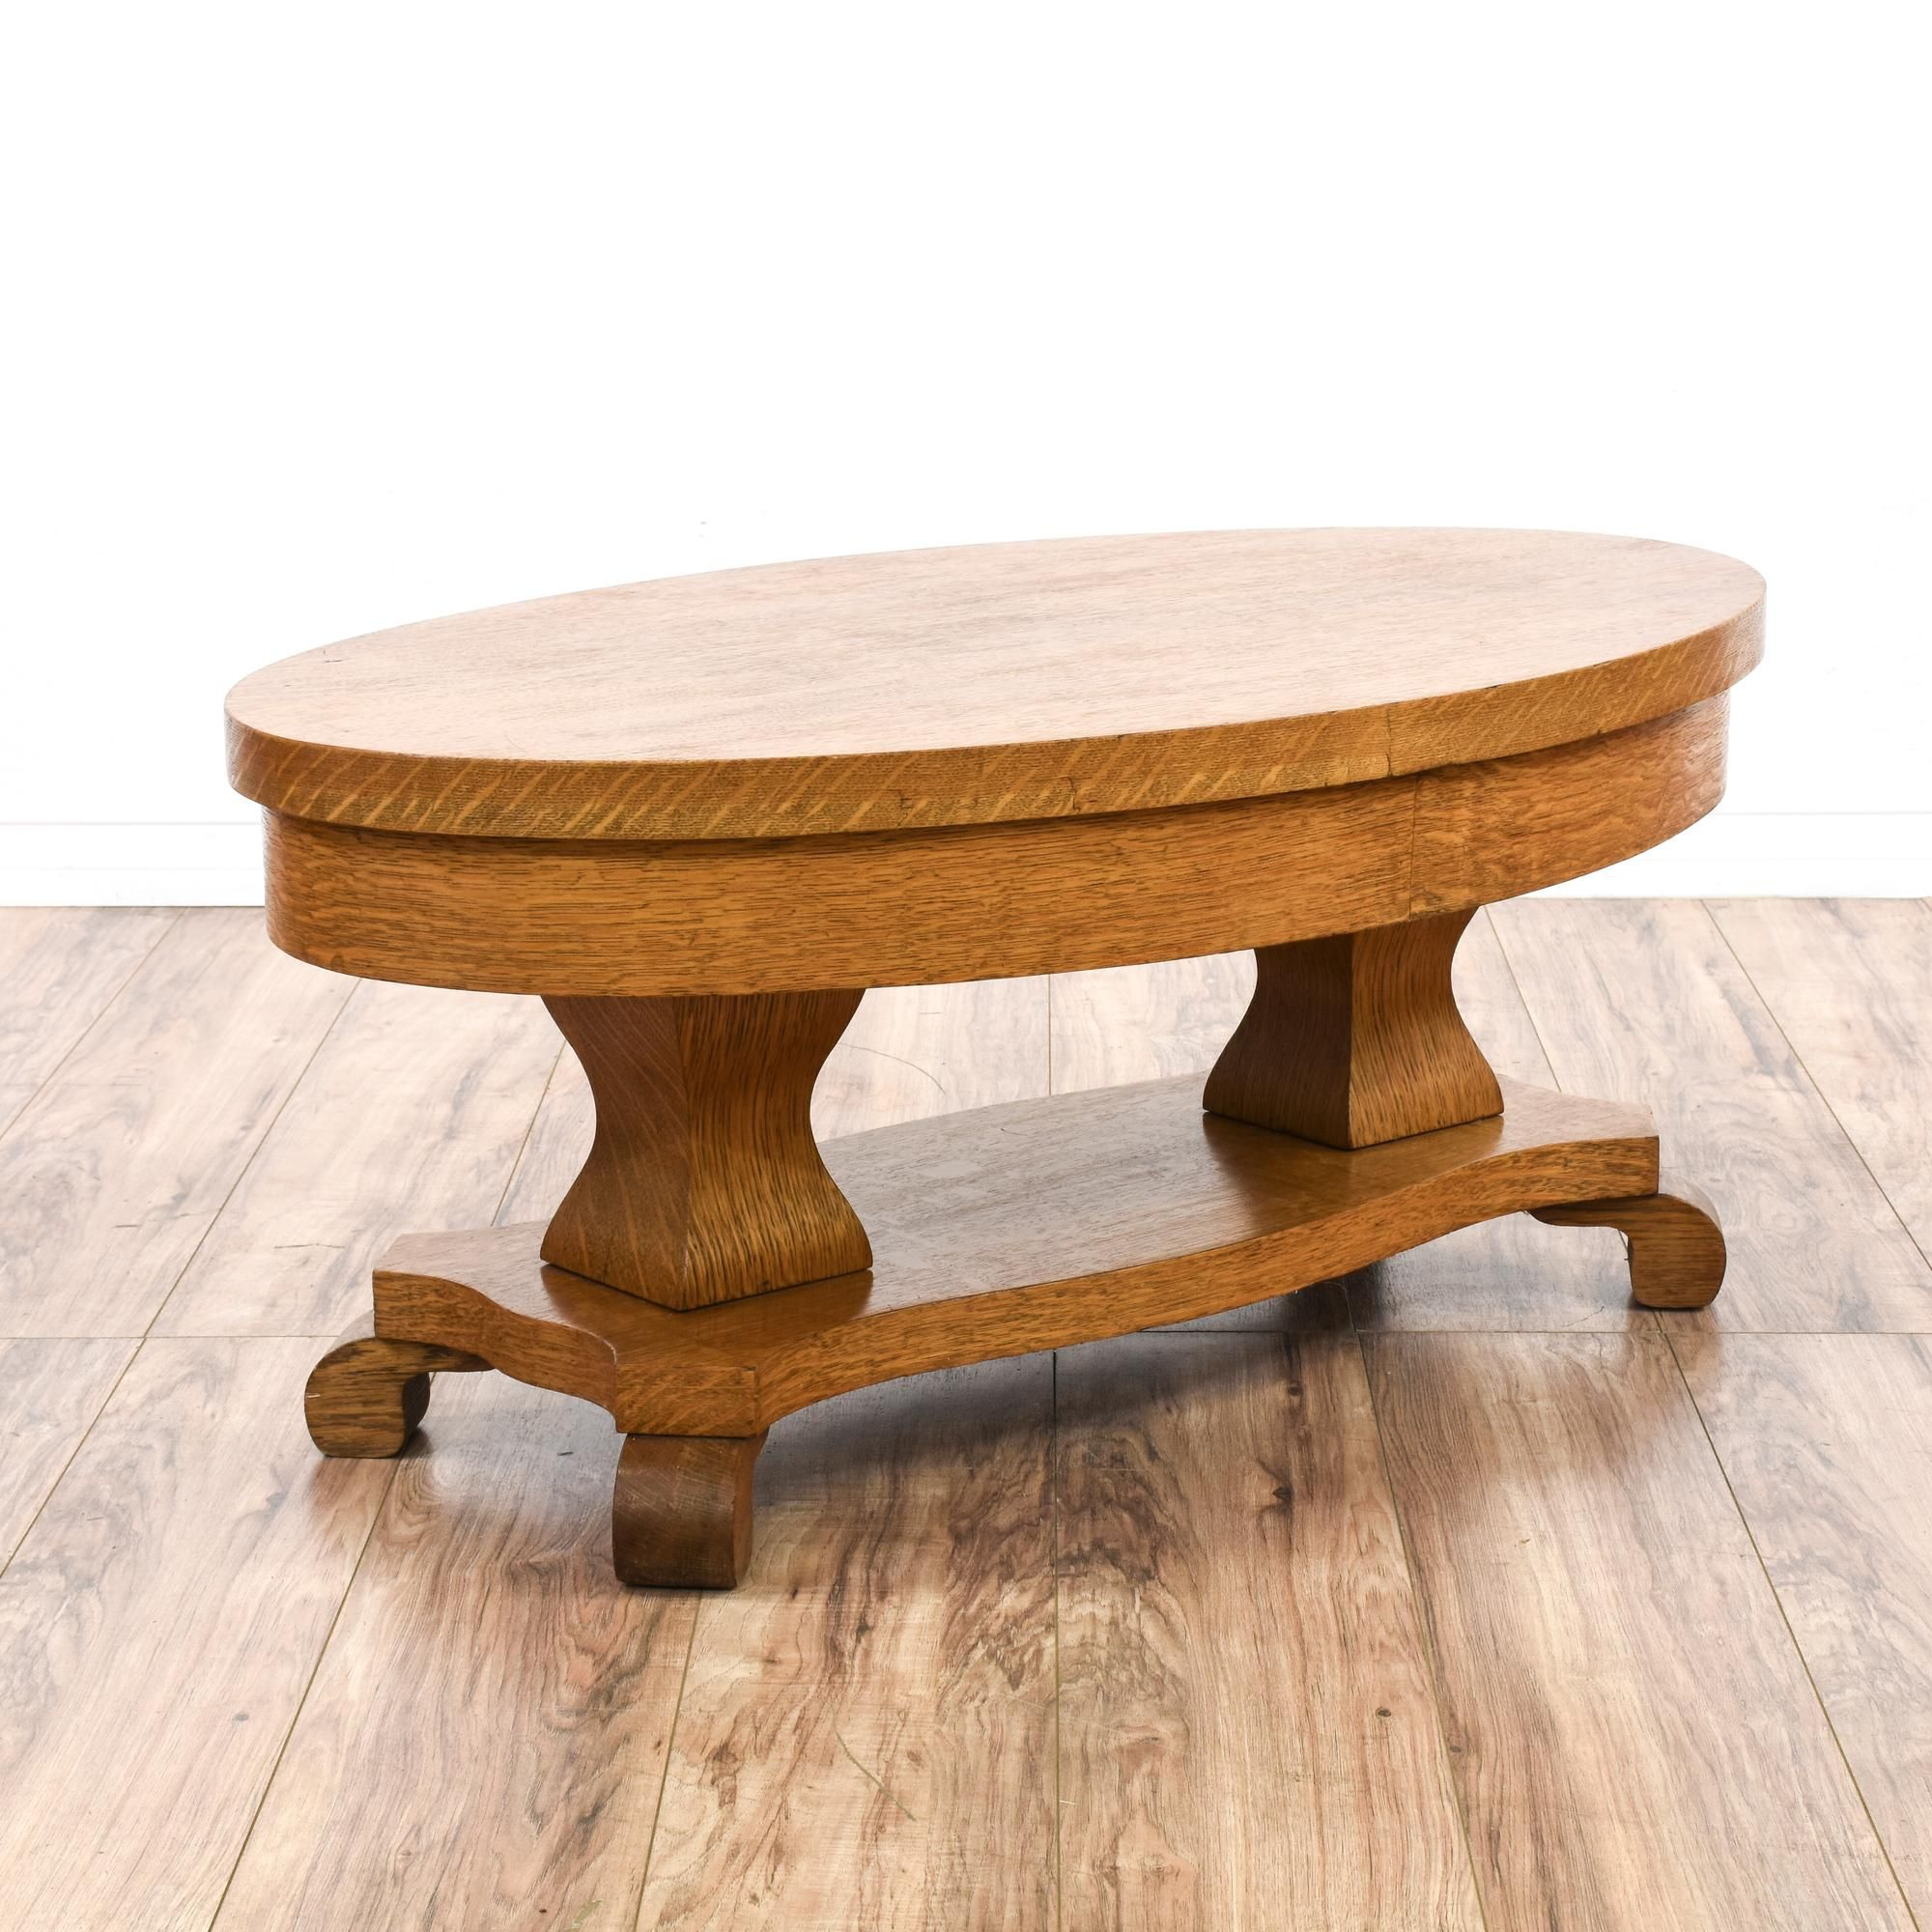 This empire style coffee table is featured in a solid wood with a